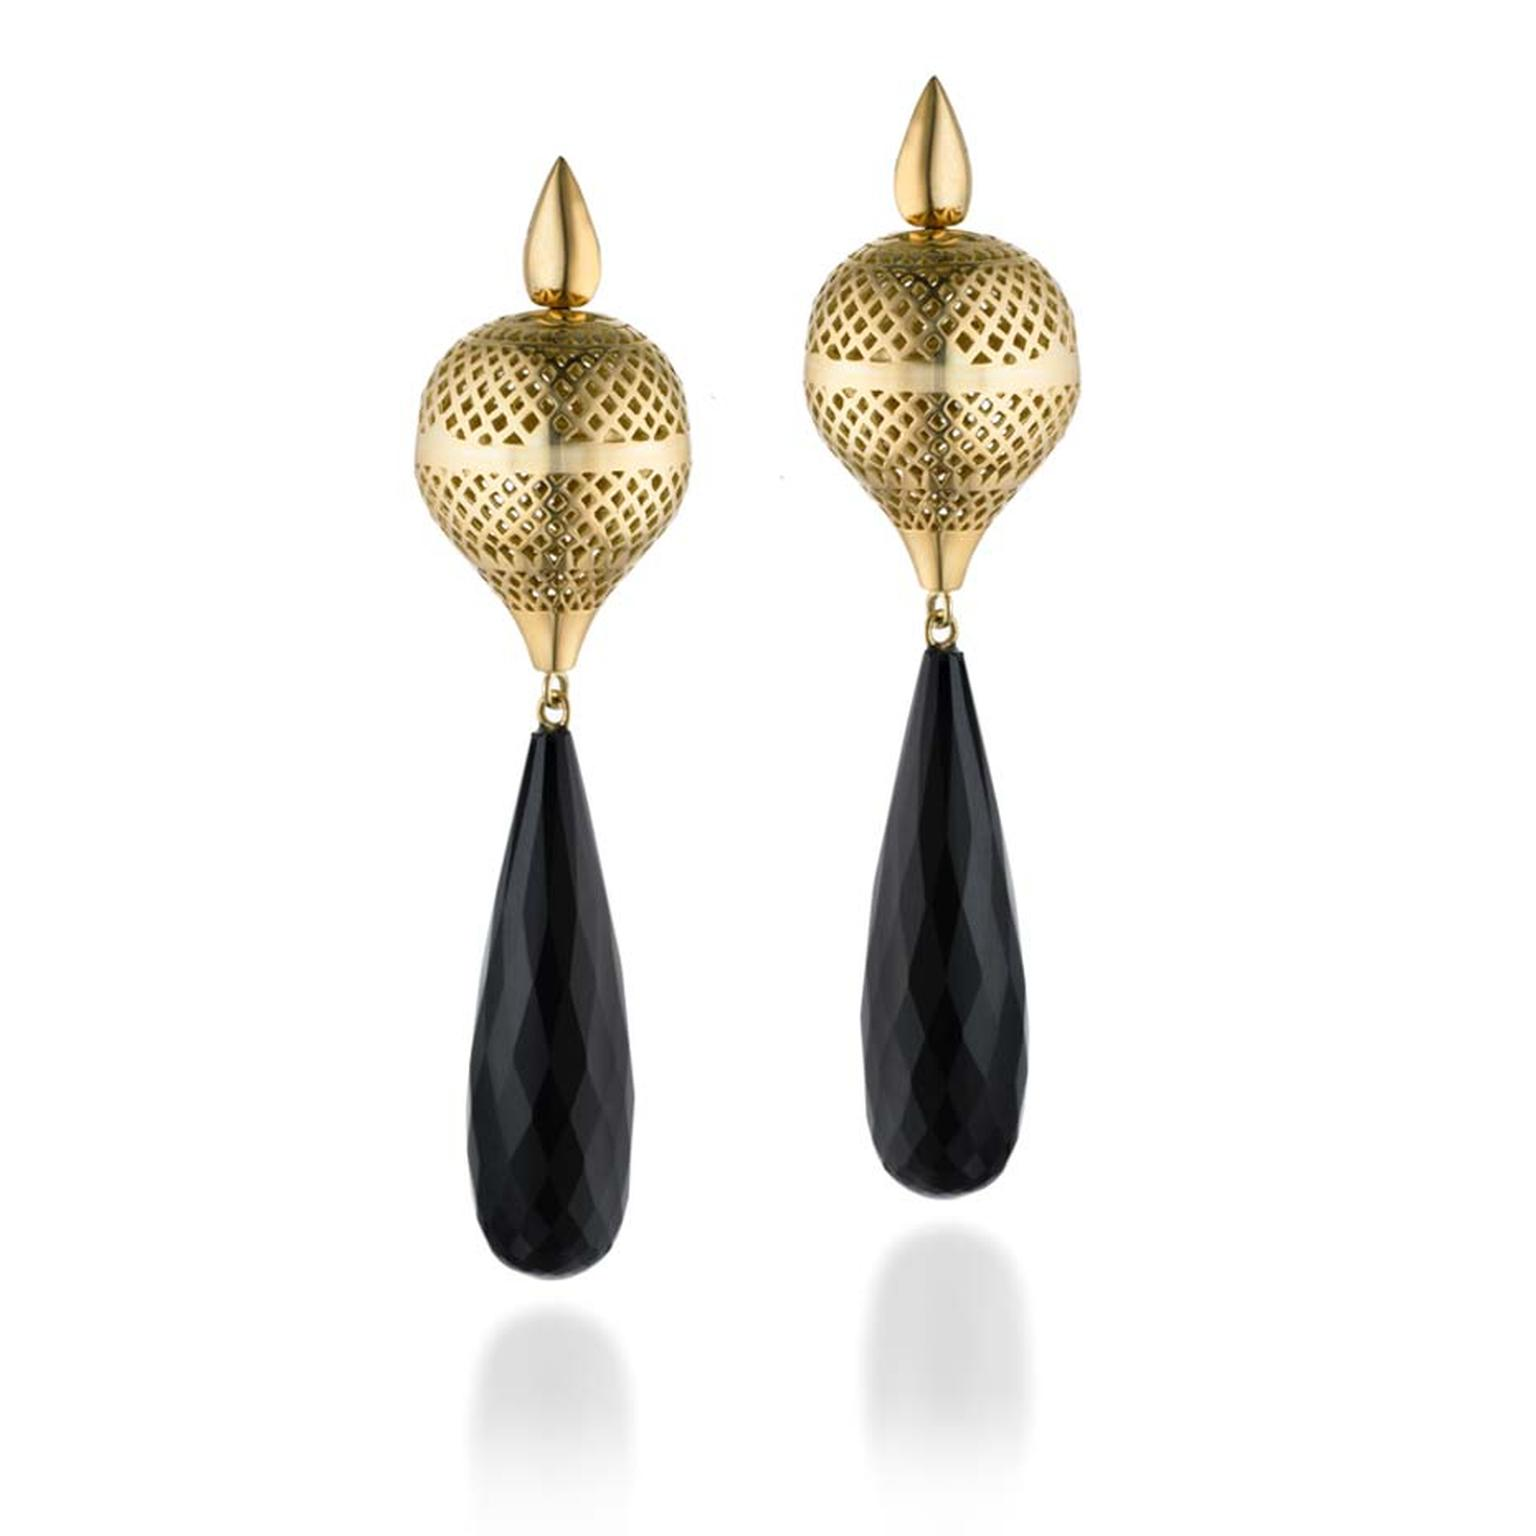 Ray Griffiths one-of-a-kind yellow gold finial hook earrings with black onyx drops.